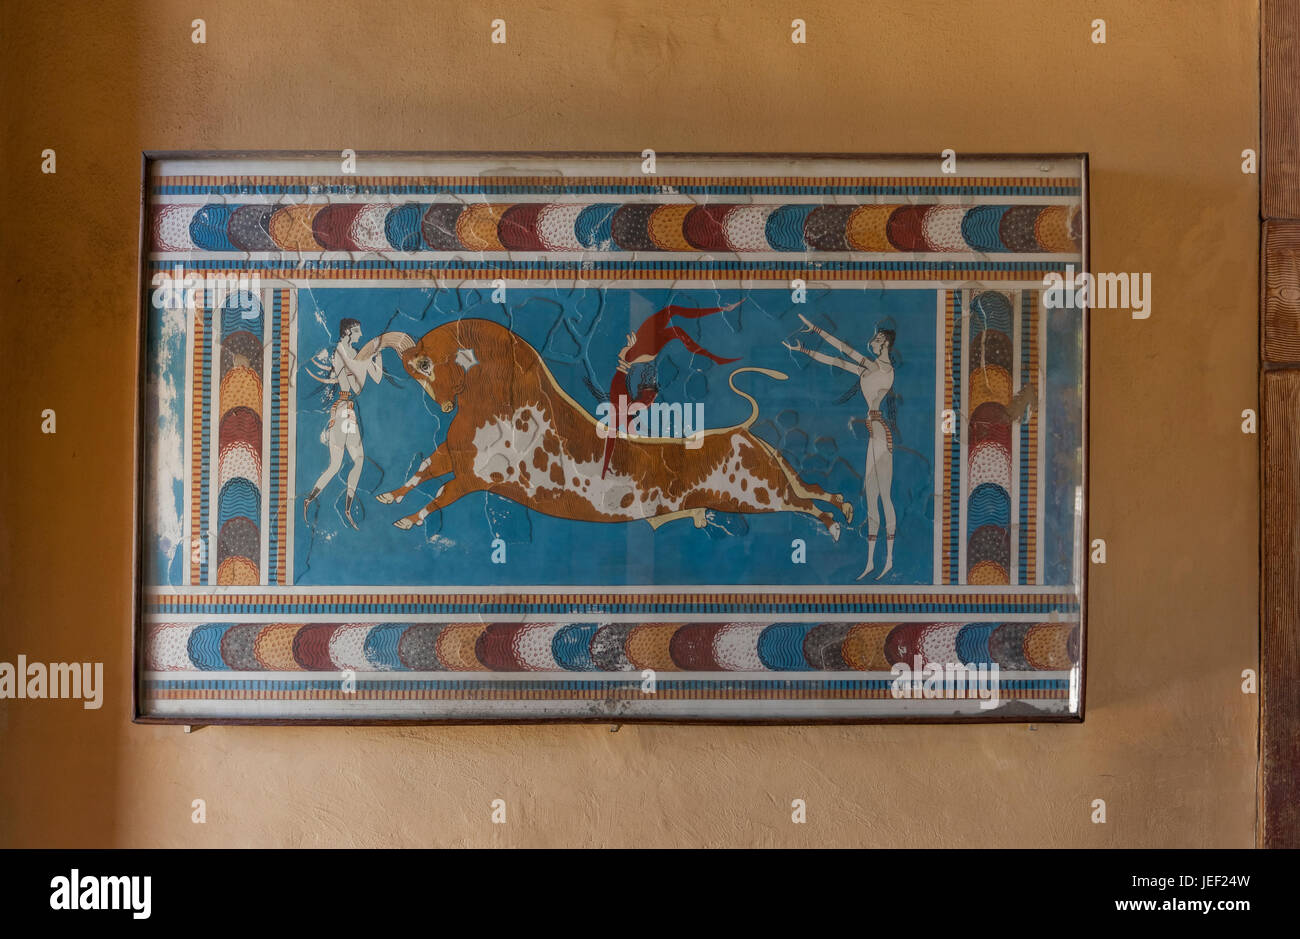 Bull-leaping fresco, Palace of Knossos, ancient city of Knossos, Heraklion, Crete, Greece - Stock Image